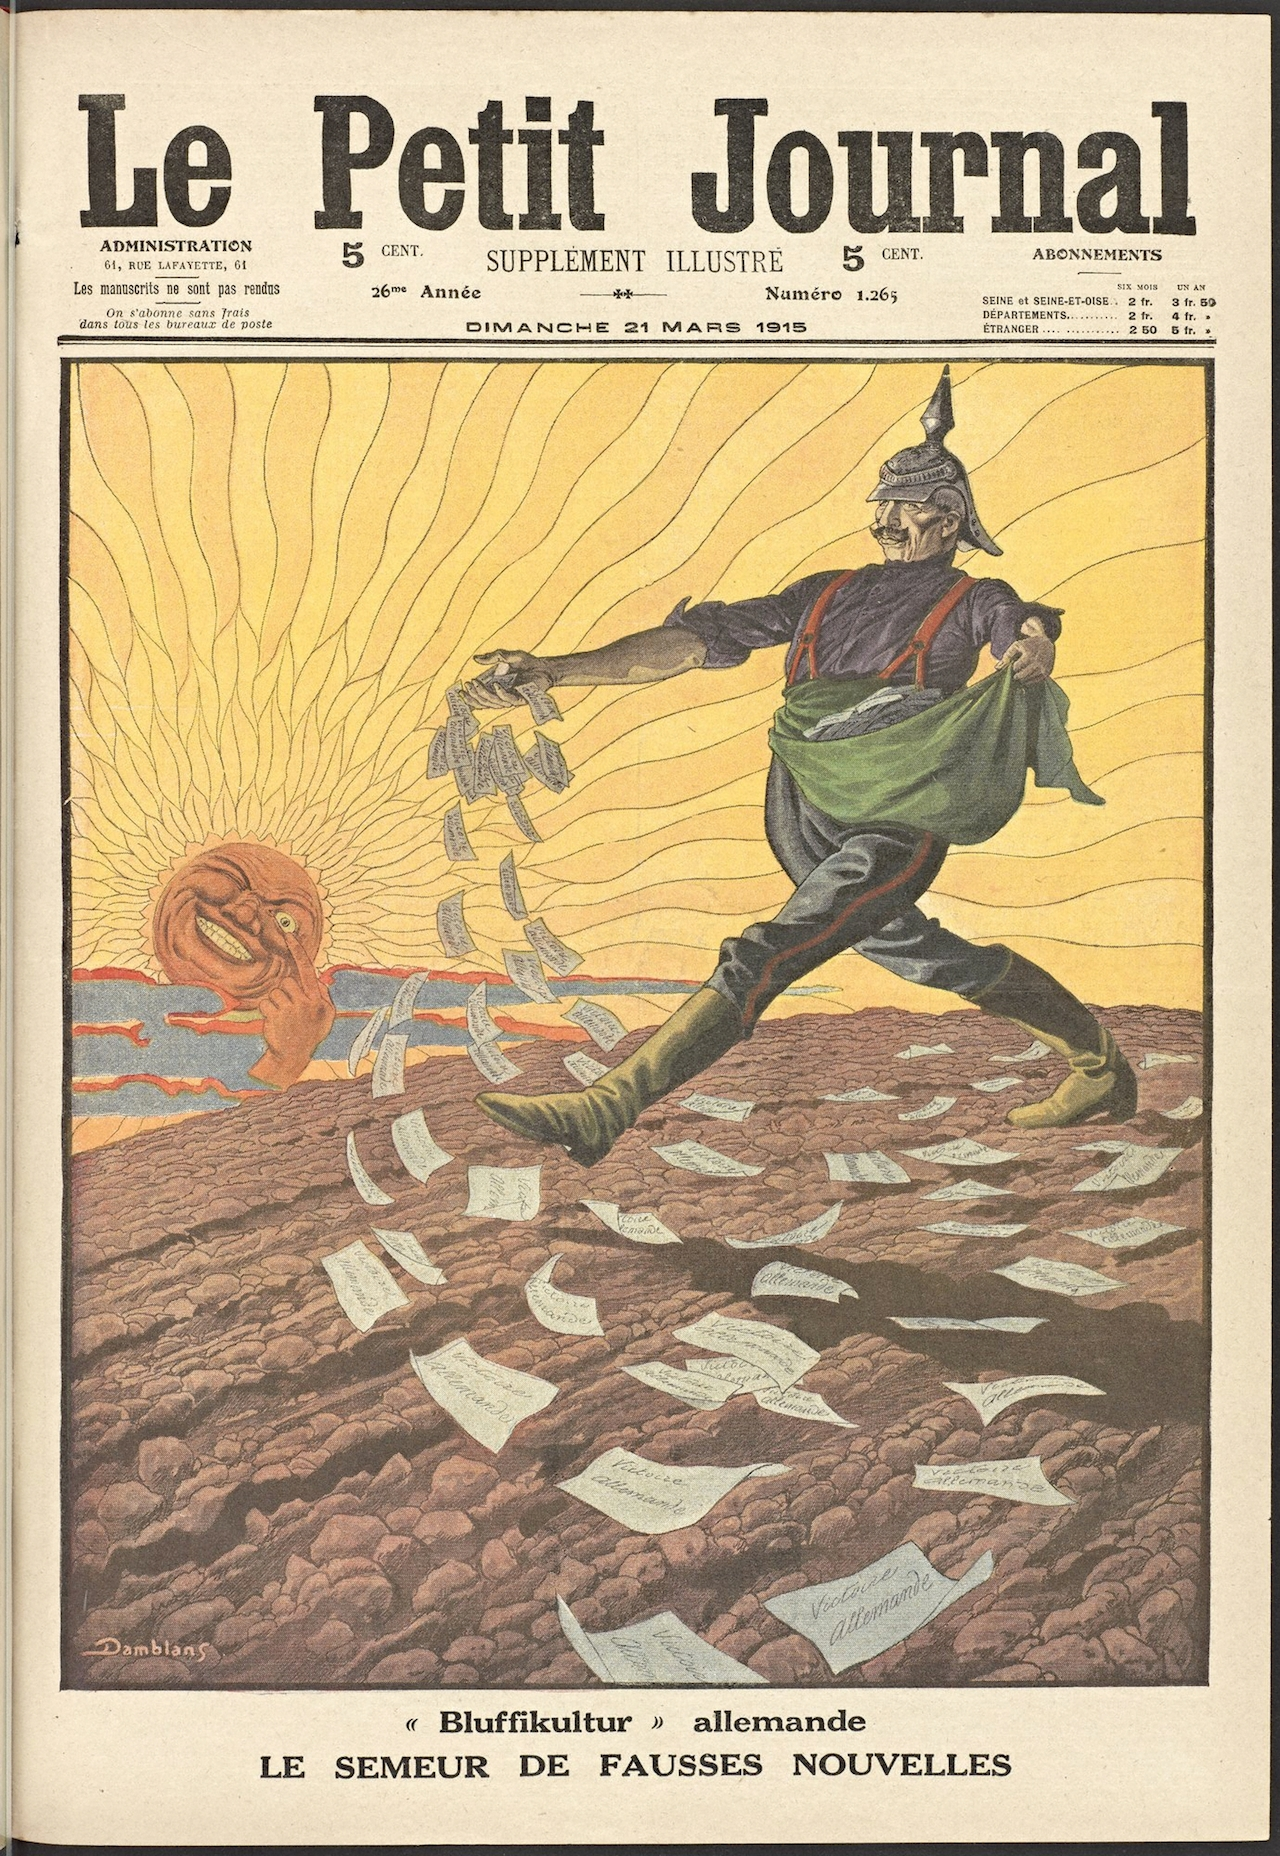 Competing views of world war i eyewitness and editorialized - Petit journal lattes ...